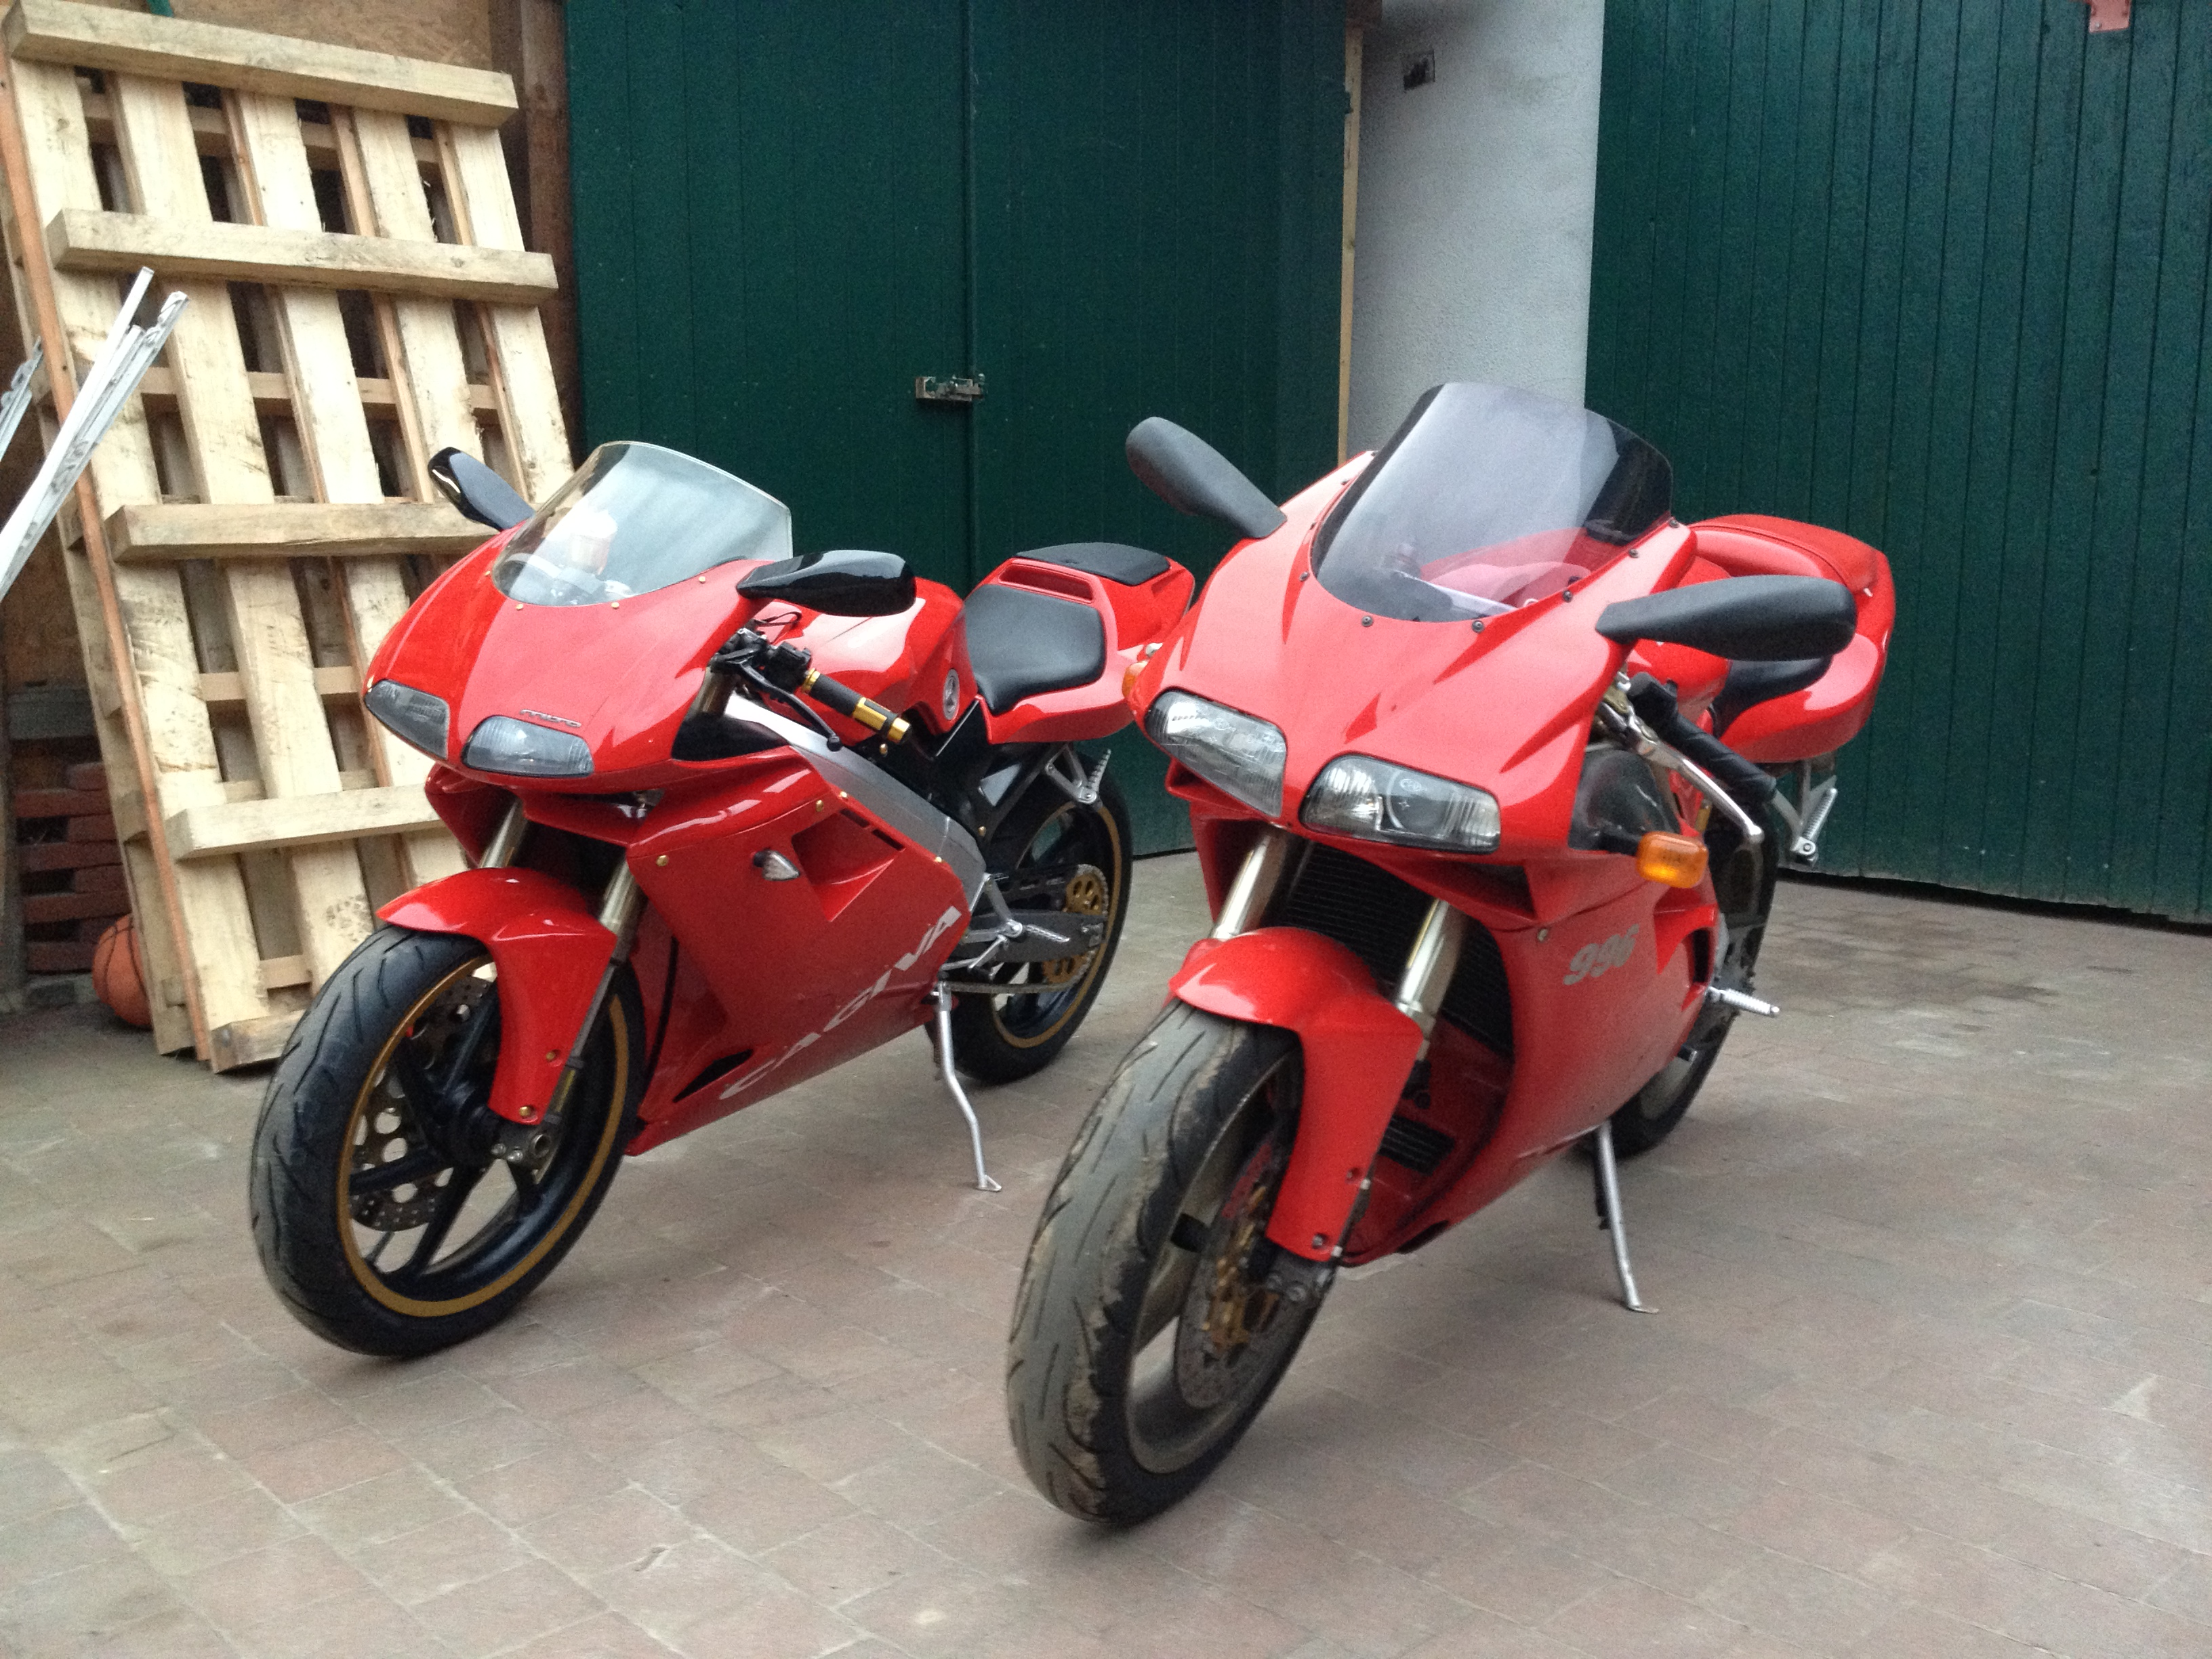 vergleichbares modell 125er zu ducati motorrad yamaha 125ccm. Black Bedroom Furniture Sets. Home Design Ideas